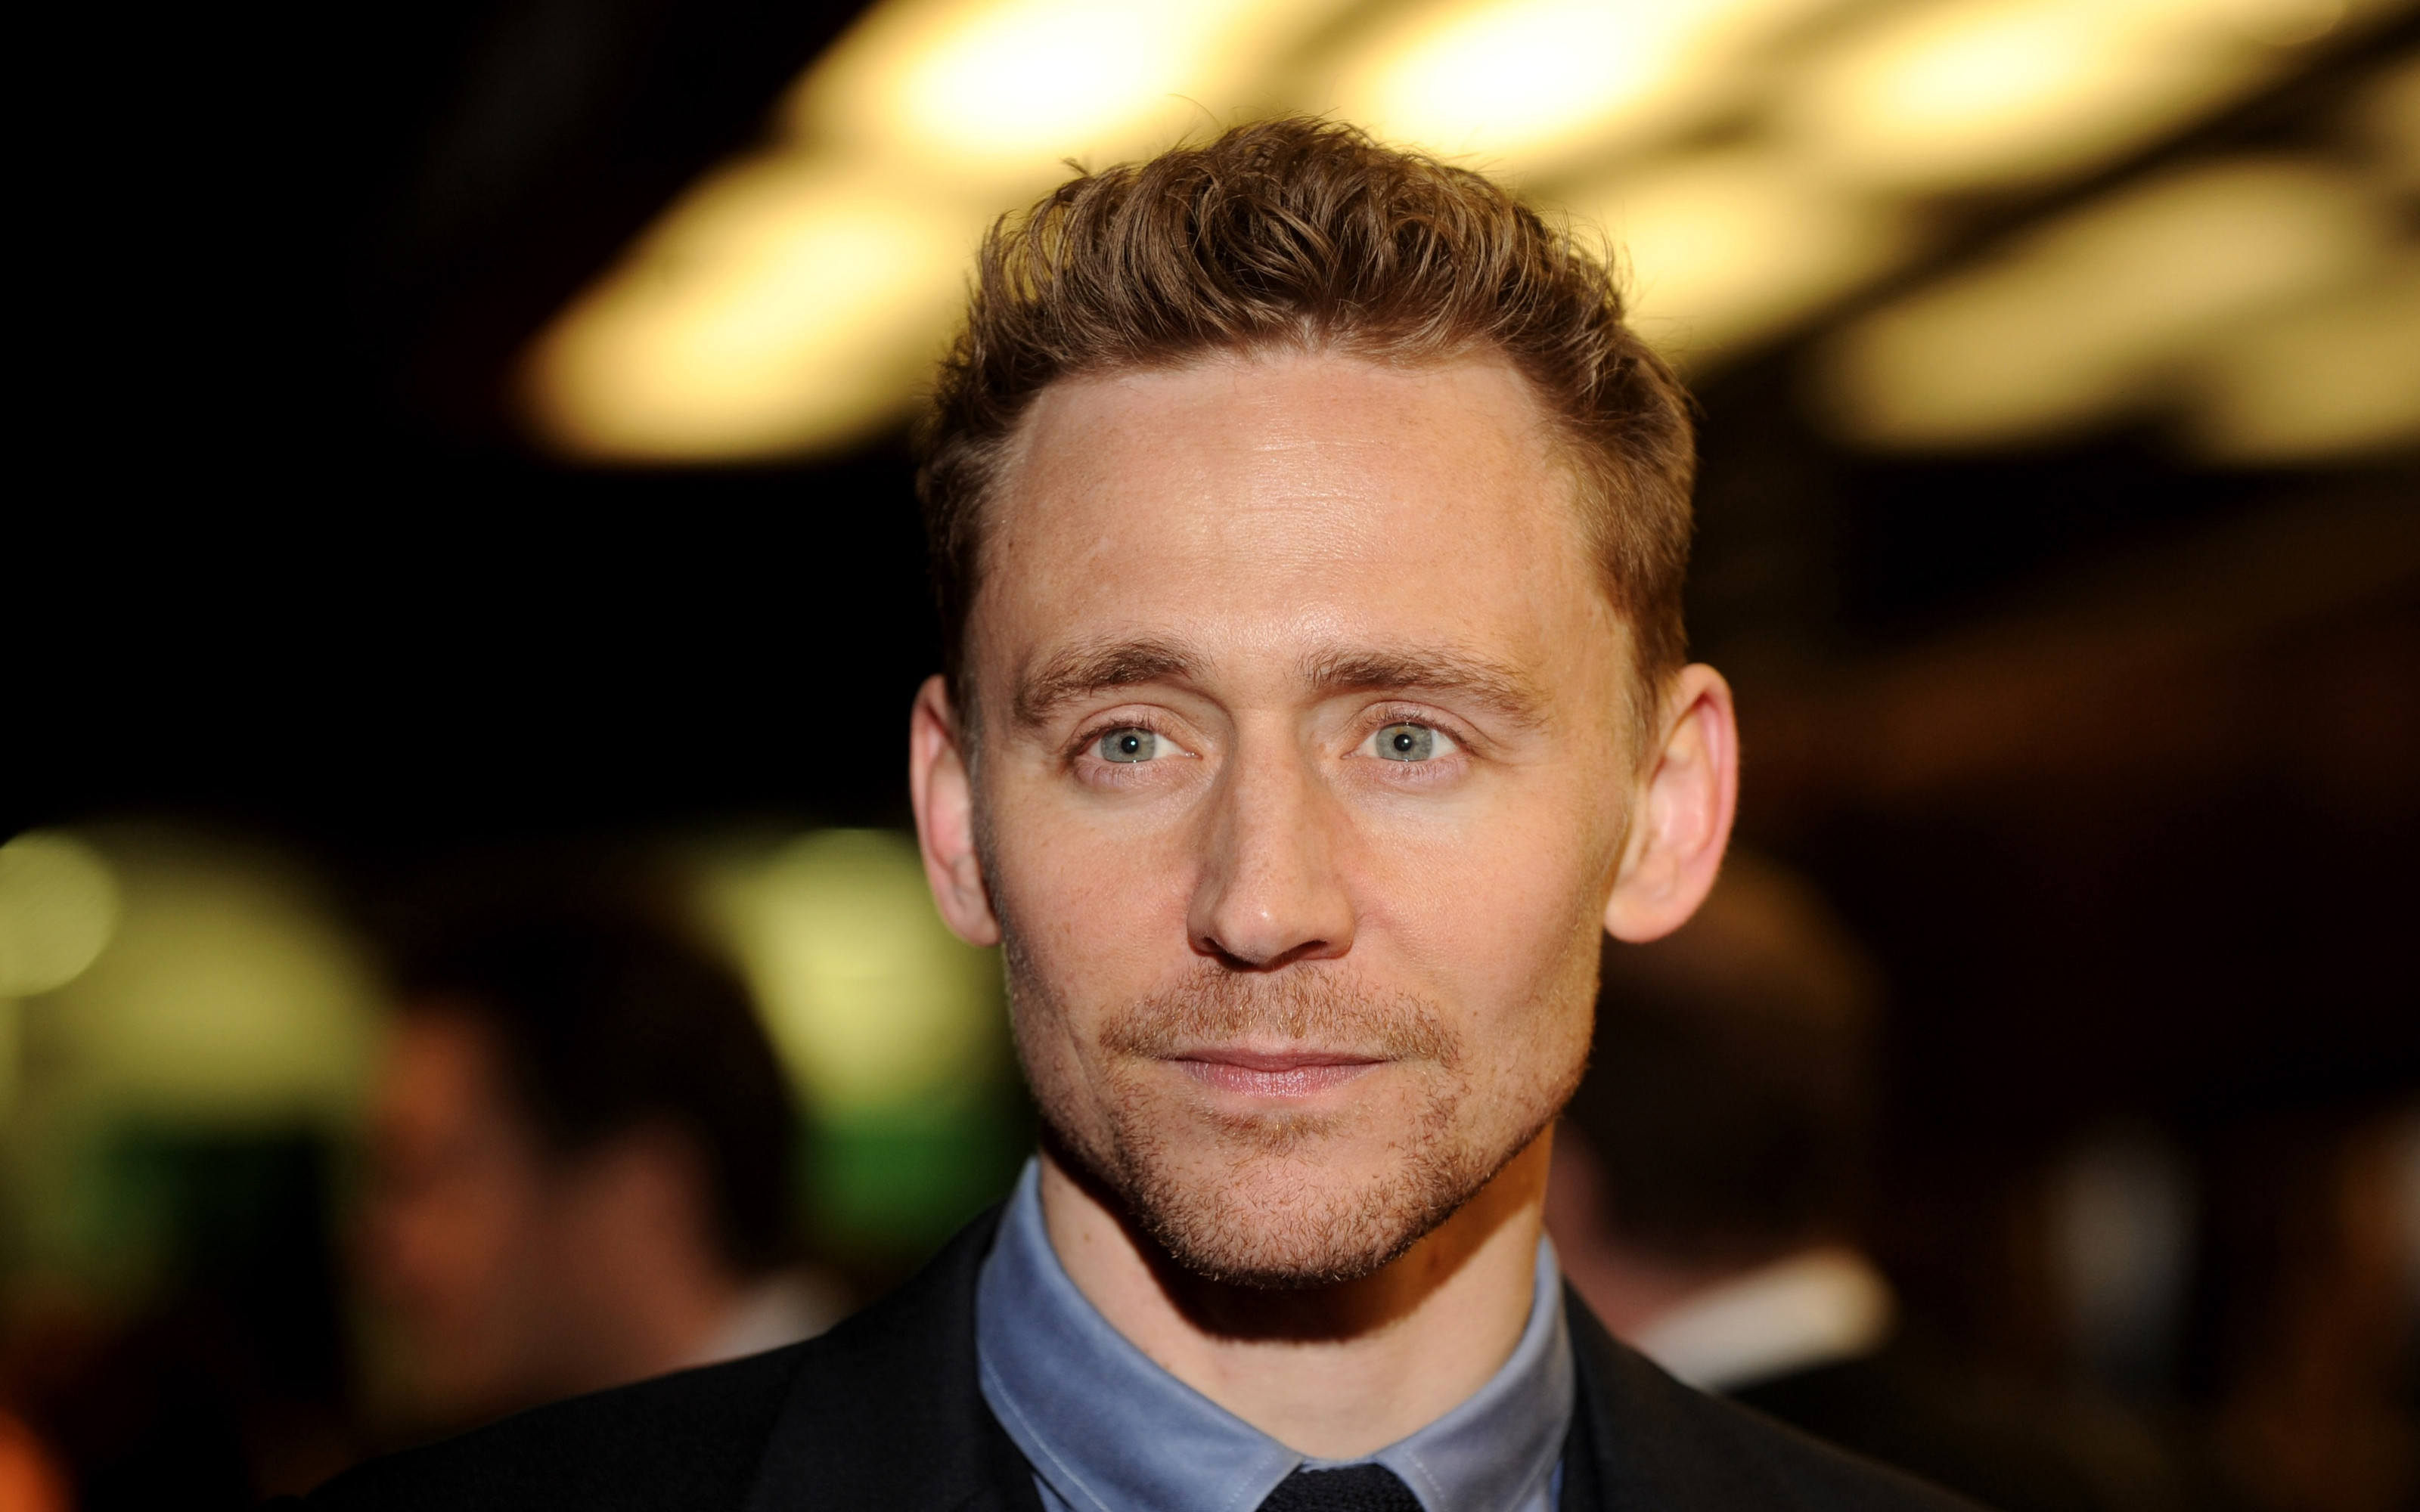 tom-hiddleston-wallpapers-13